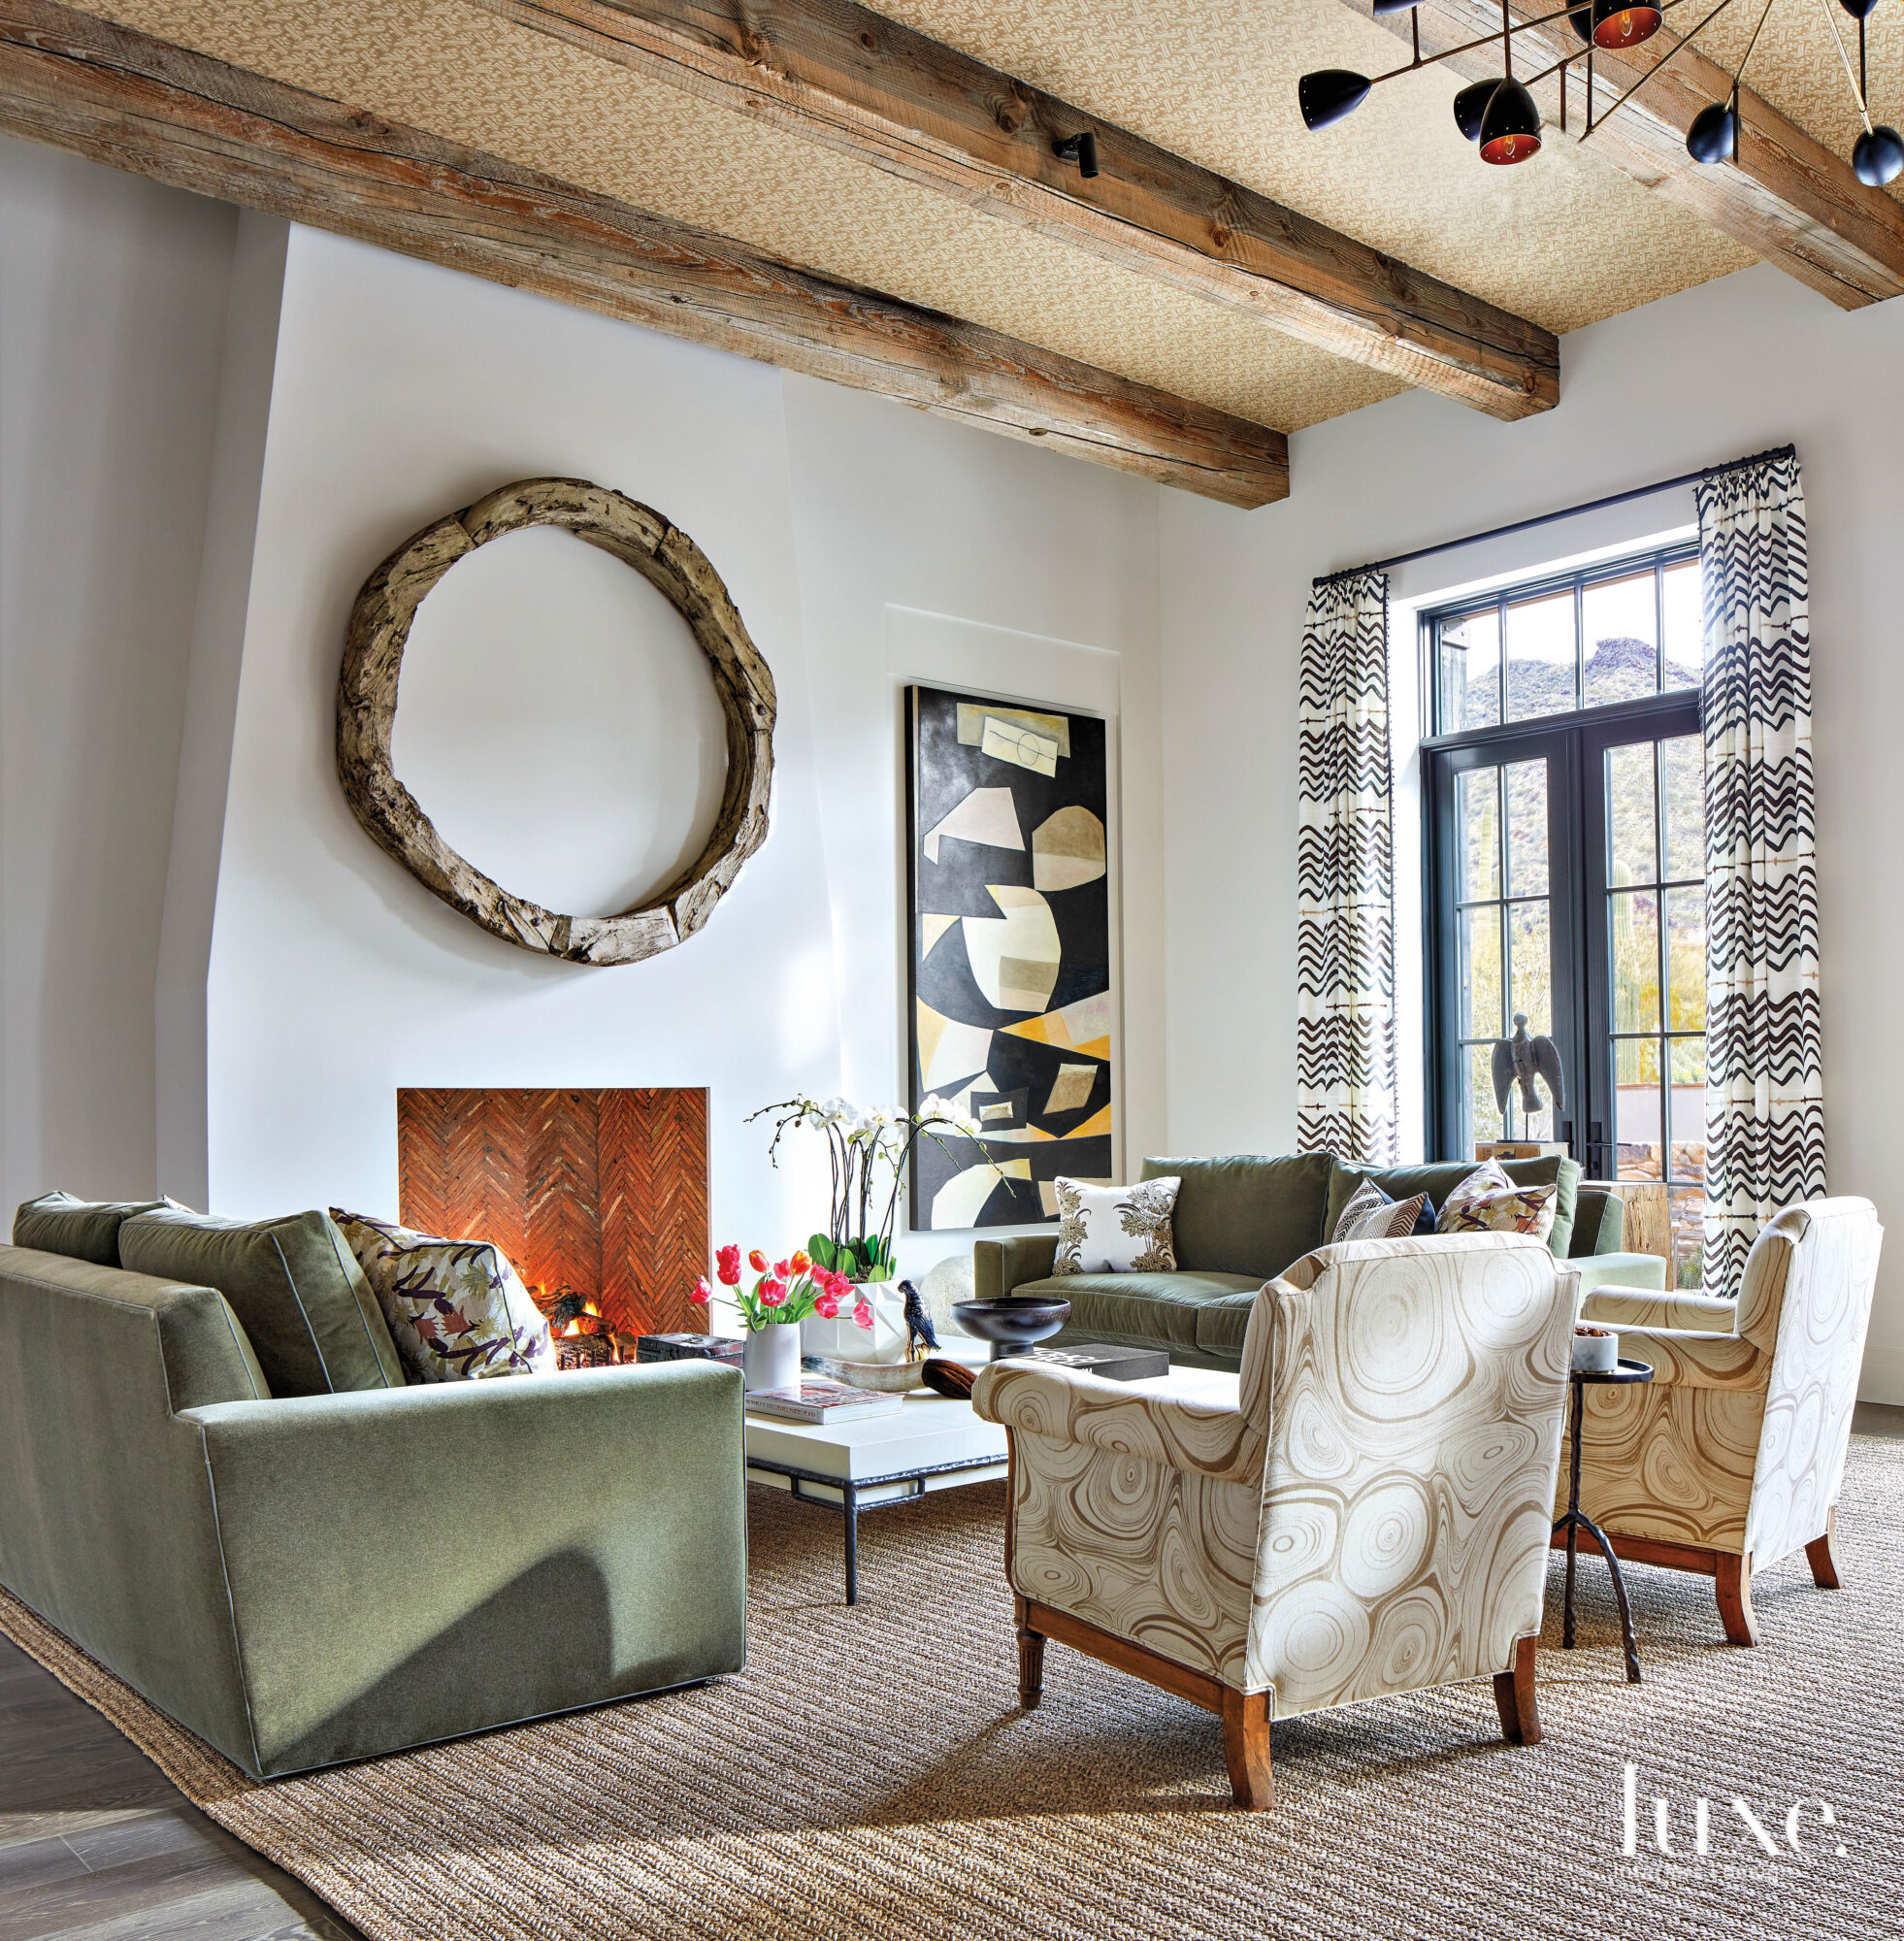 Wooden beams and patterned furniture...